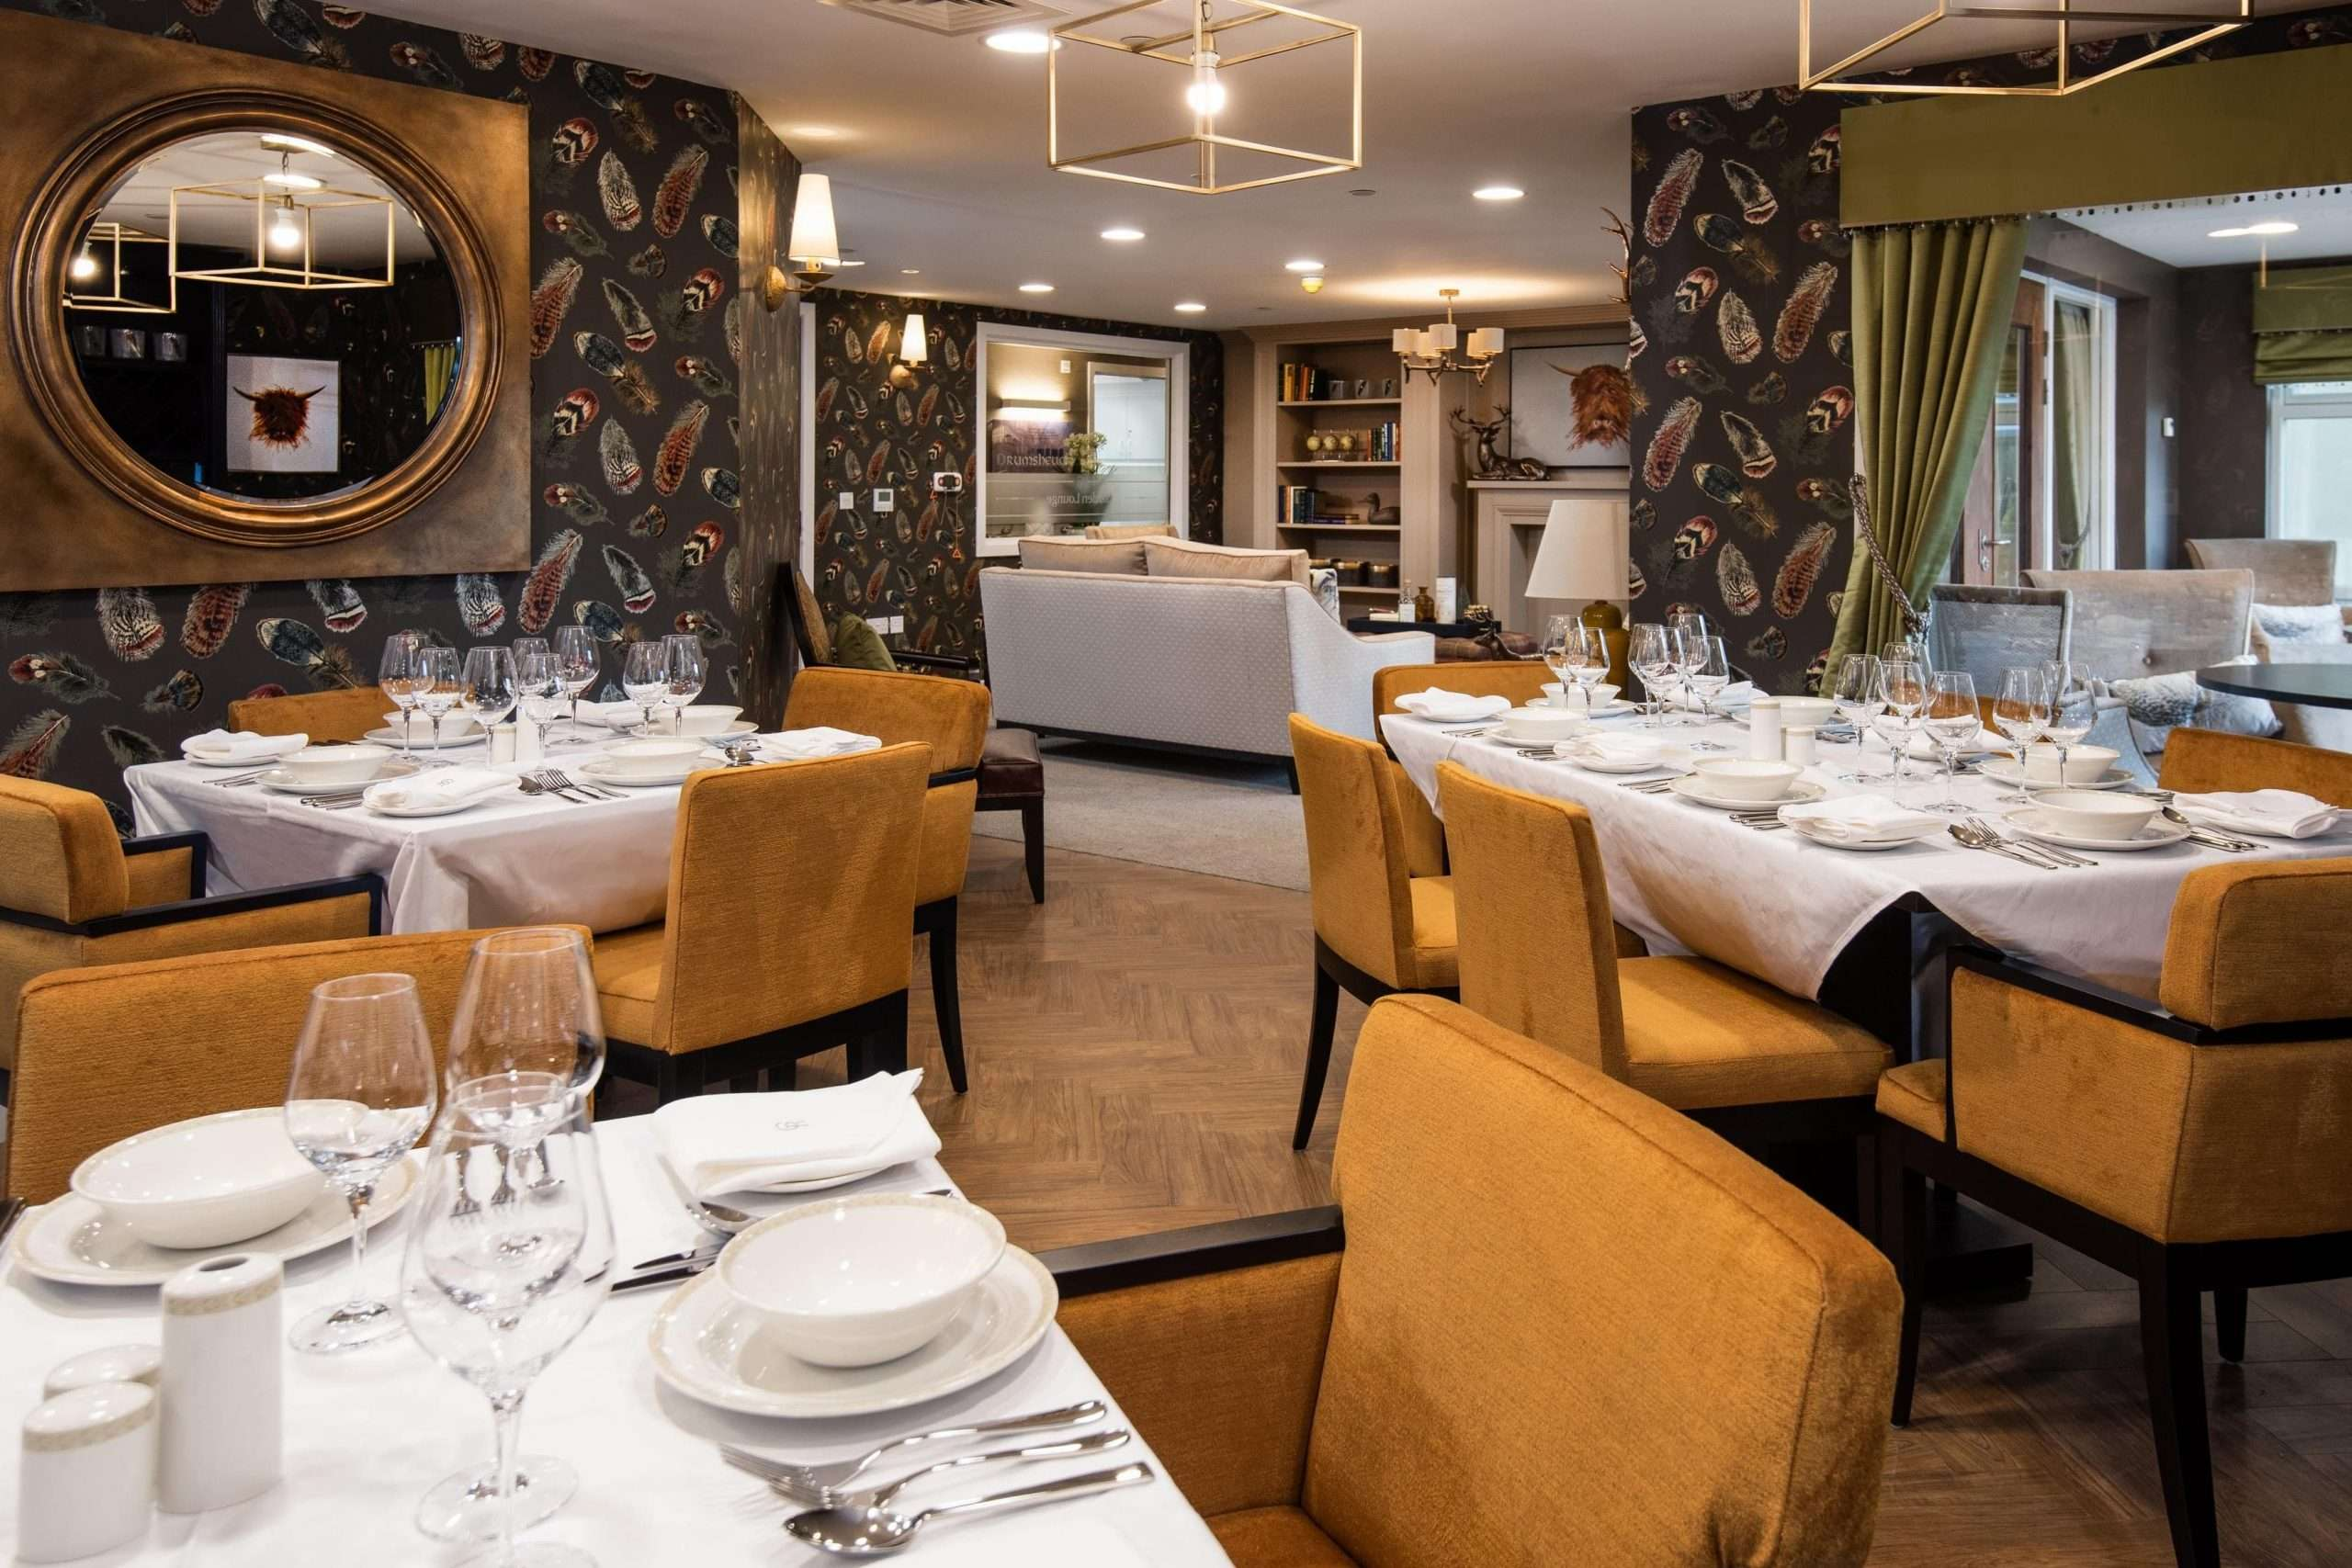 Fine dining room with tables, chairs and crockery